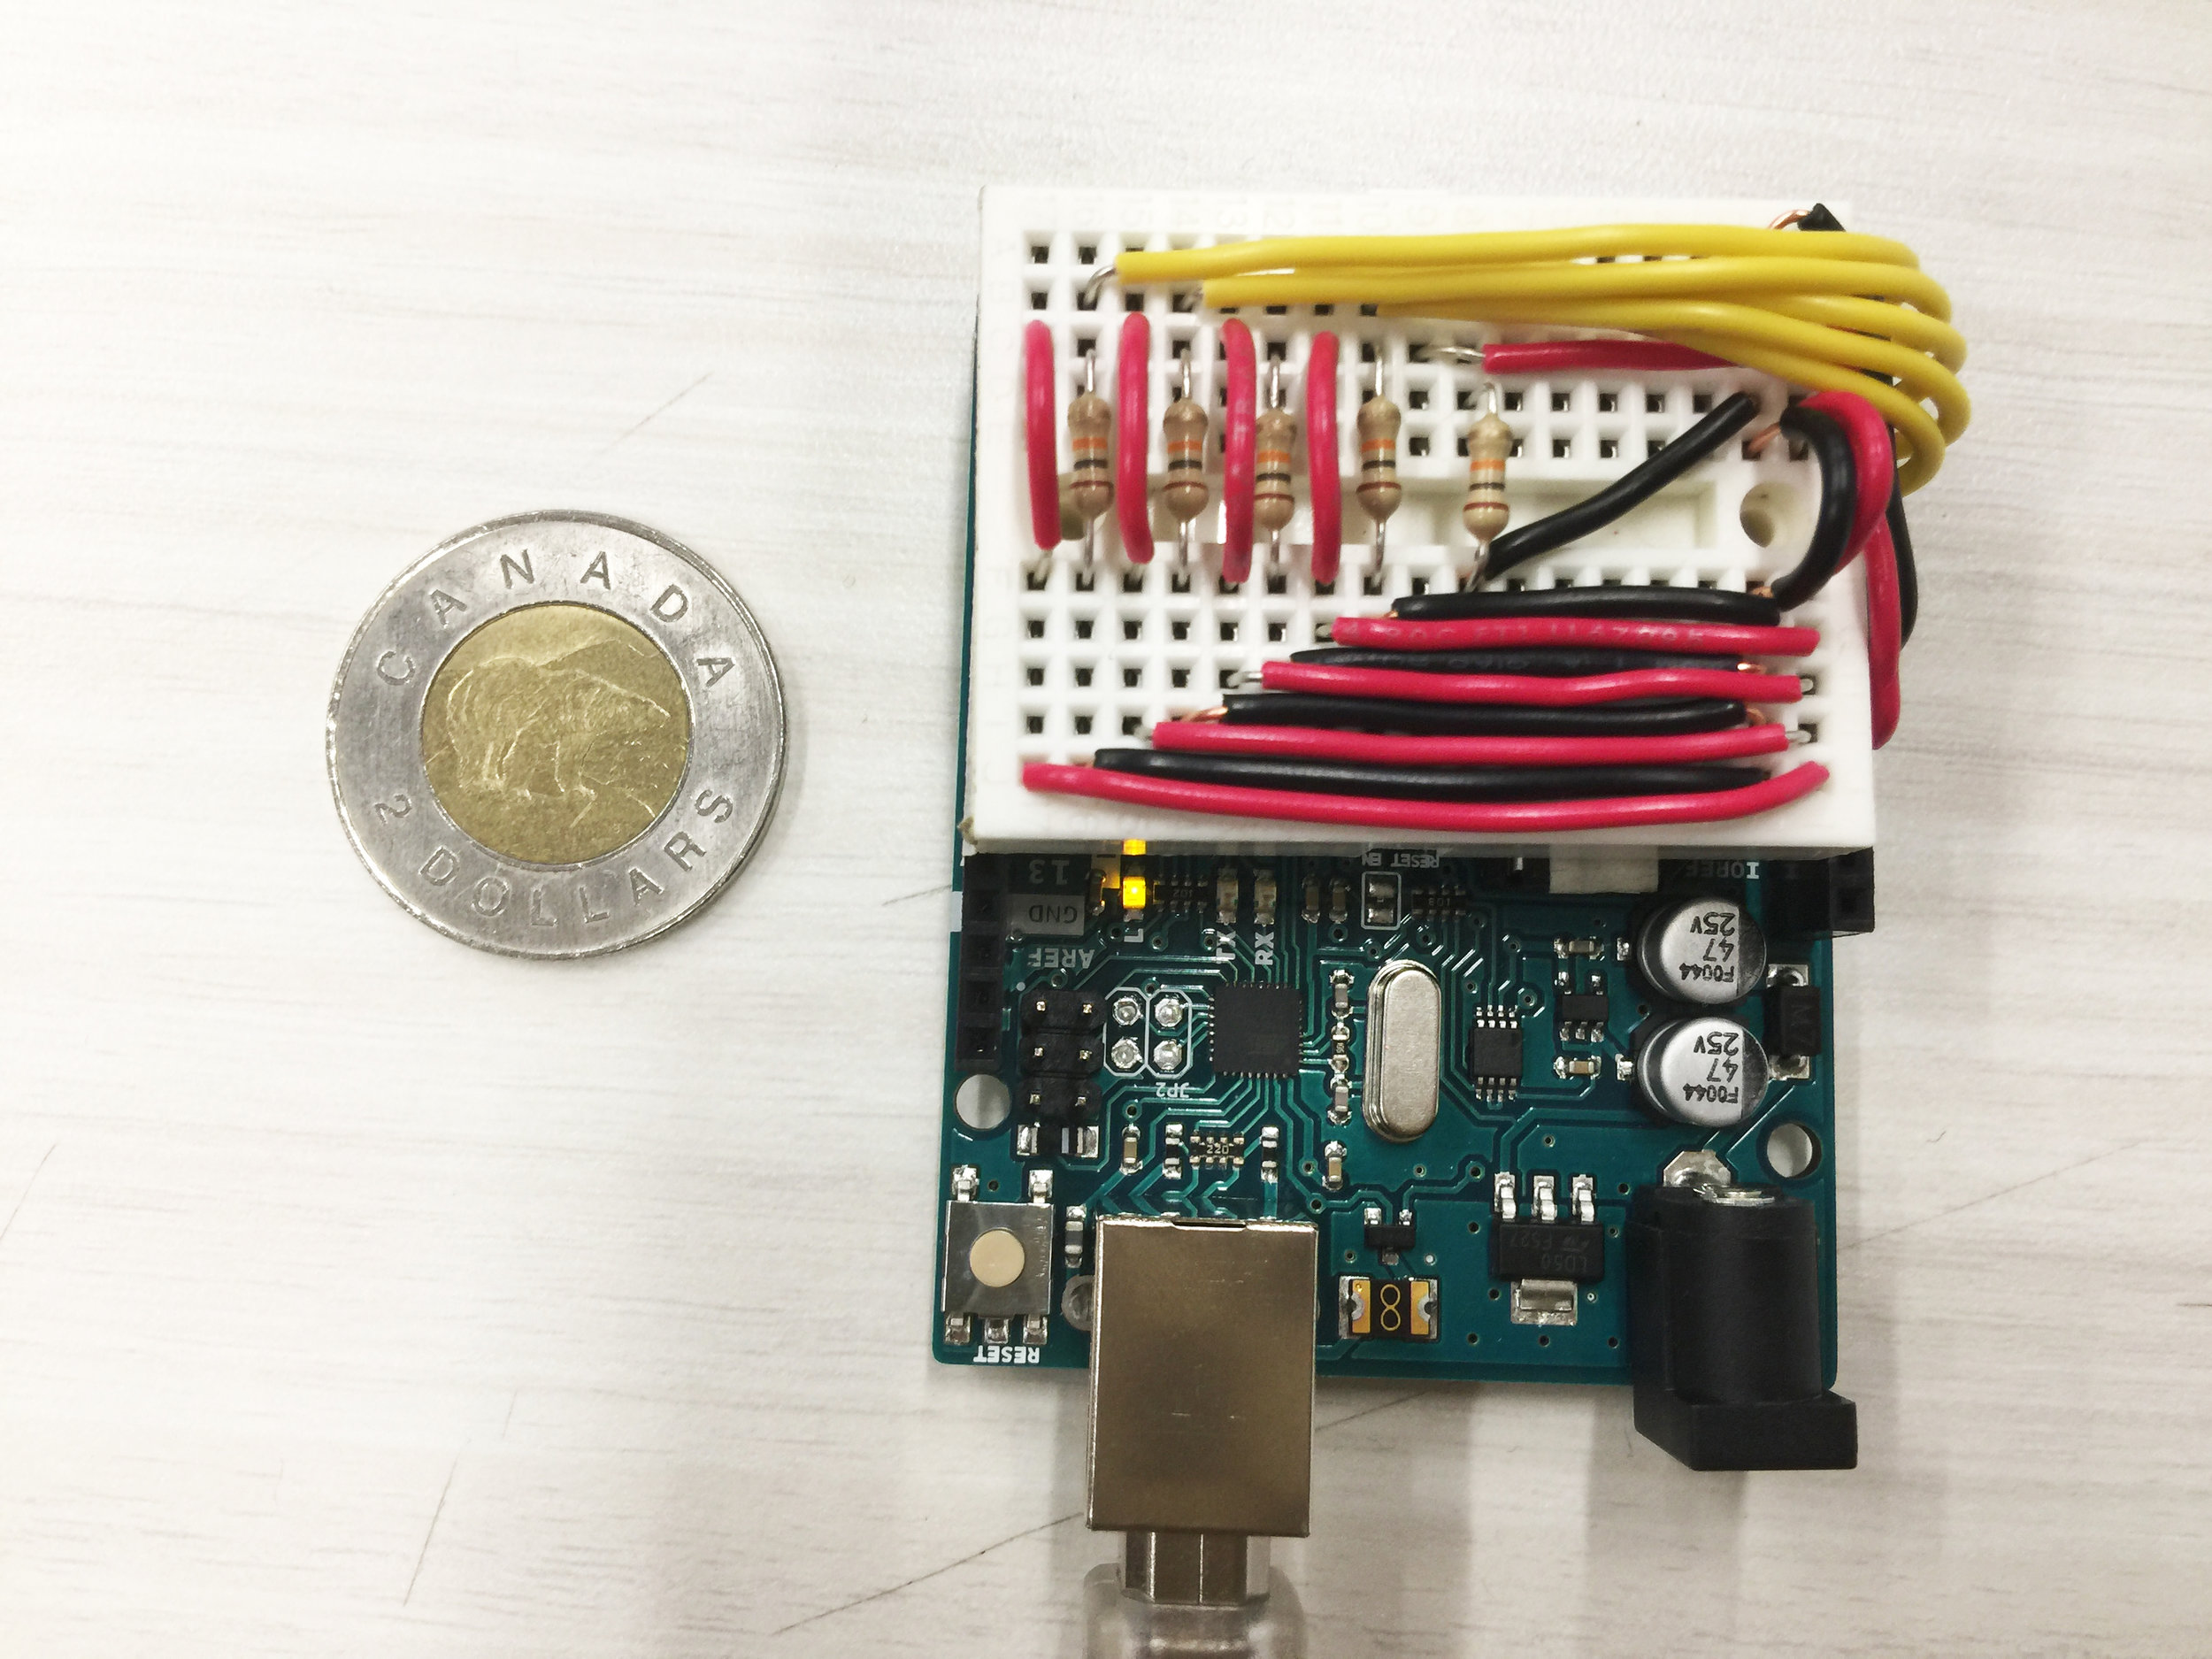 Wiring on the mini breadboard, toonie for size comparison